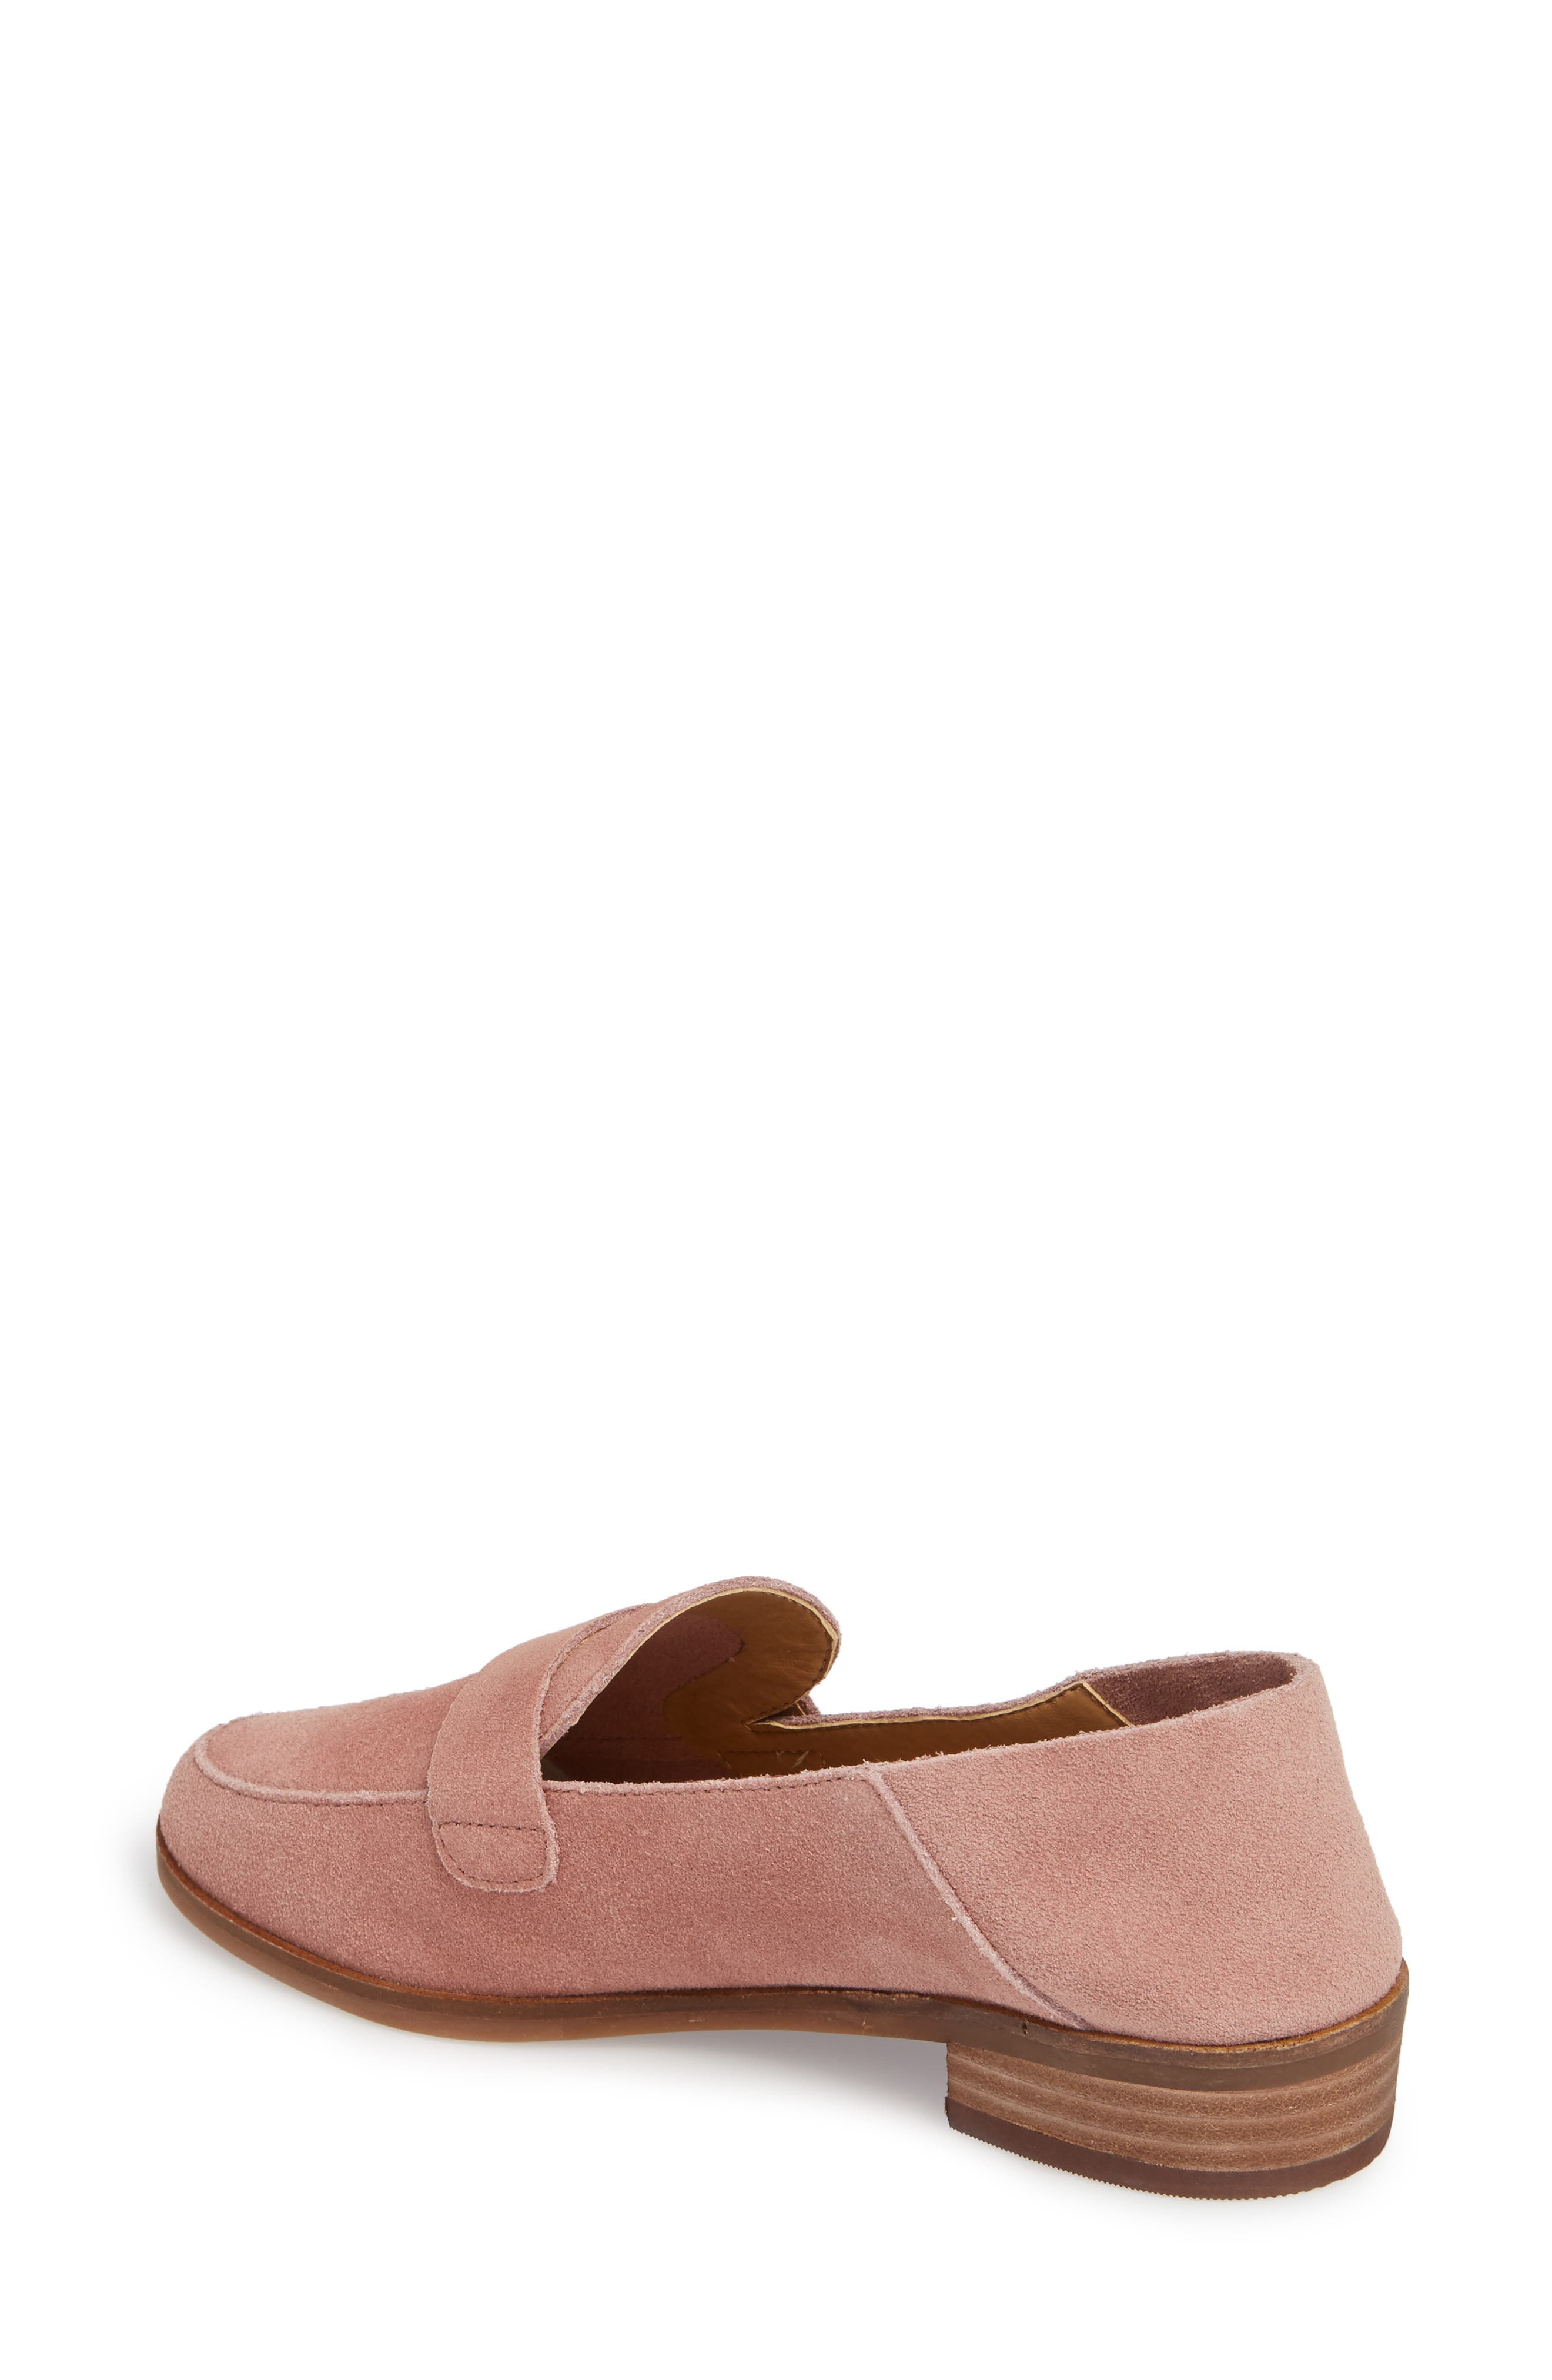 Chennie Loafer,                             Alternate thumbnail 8, color,